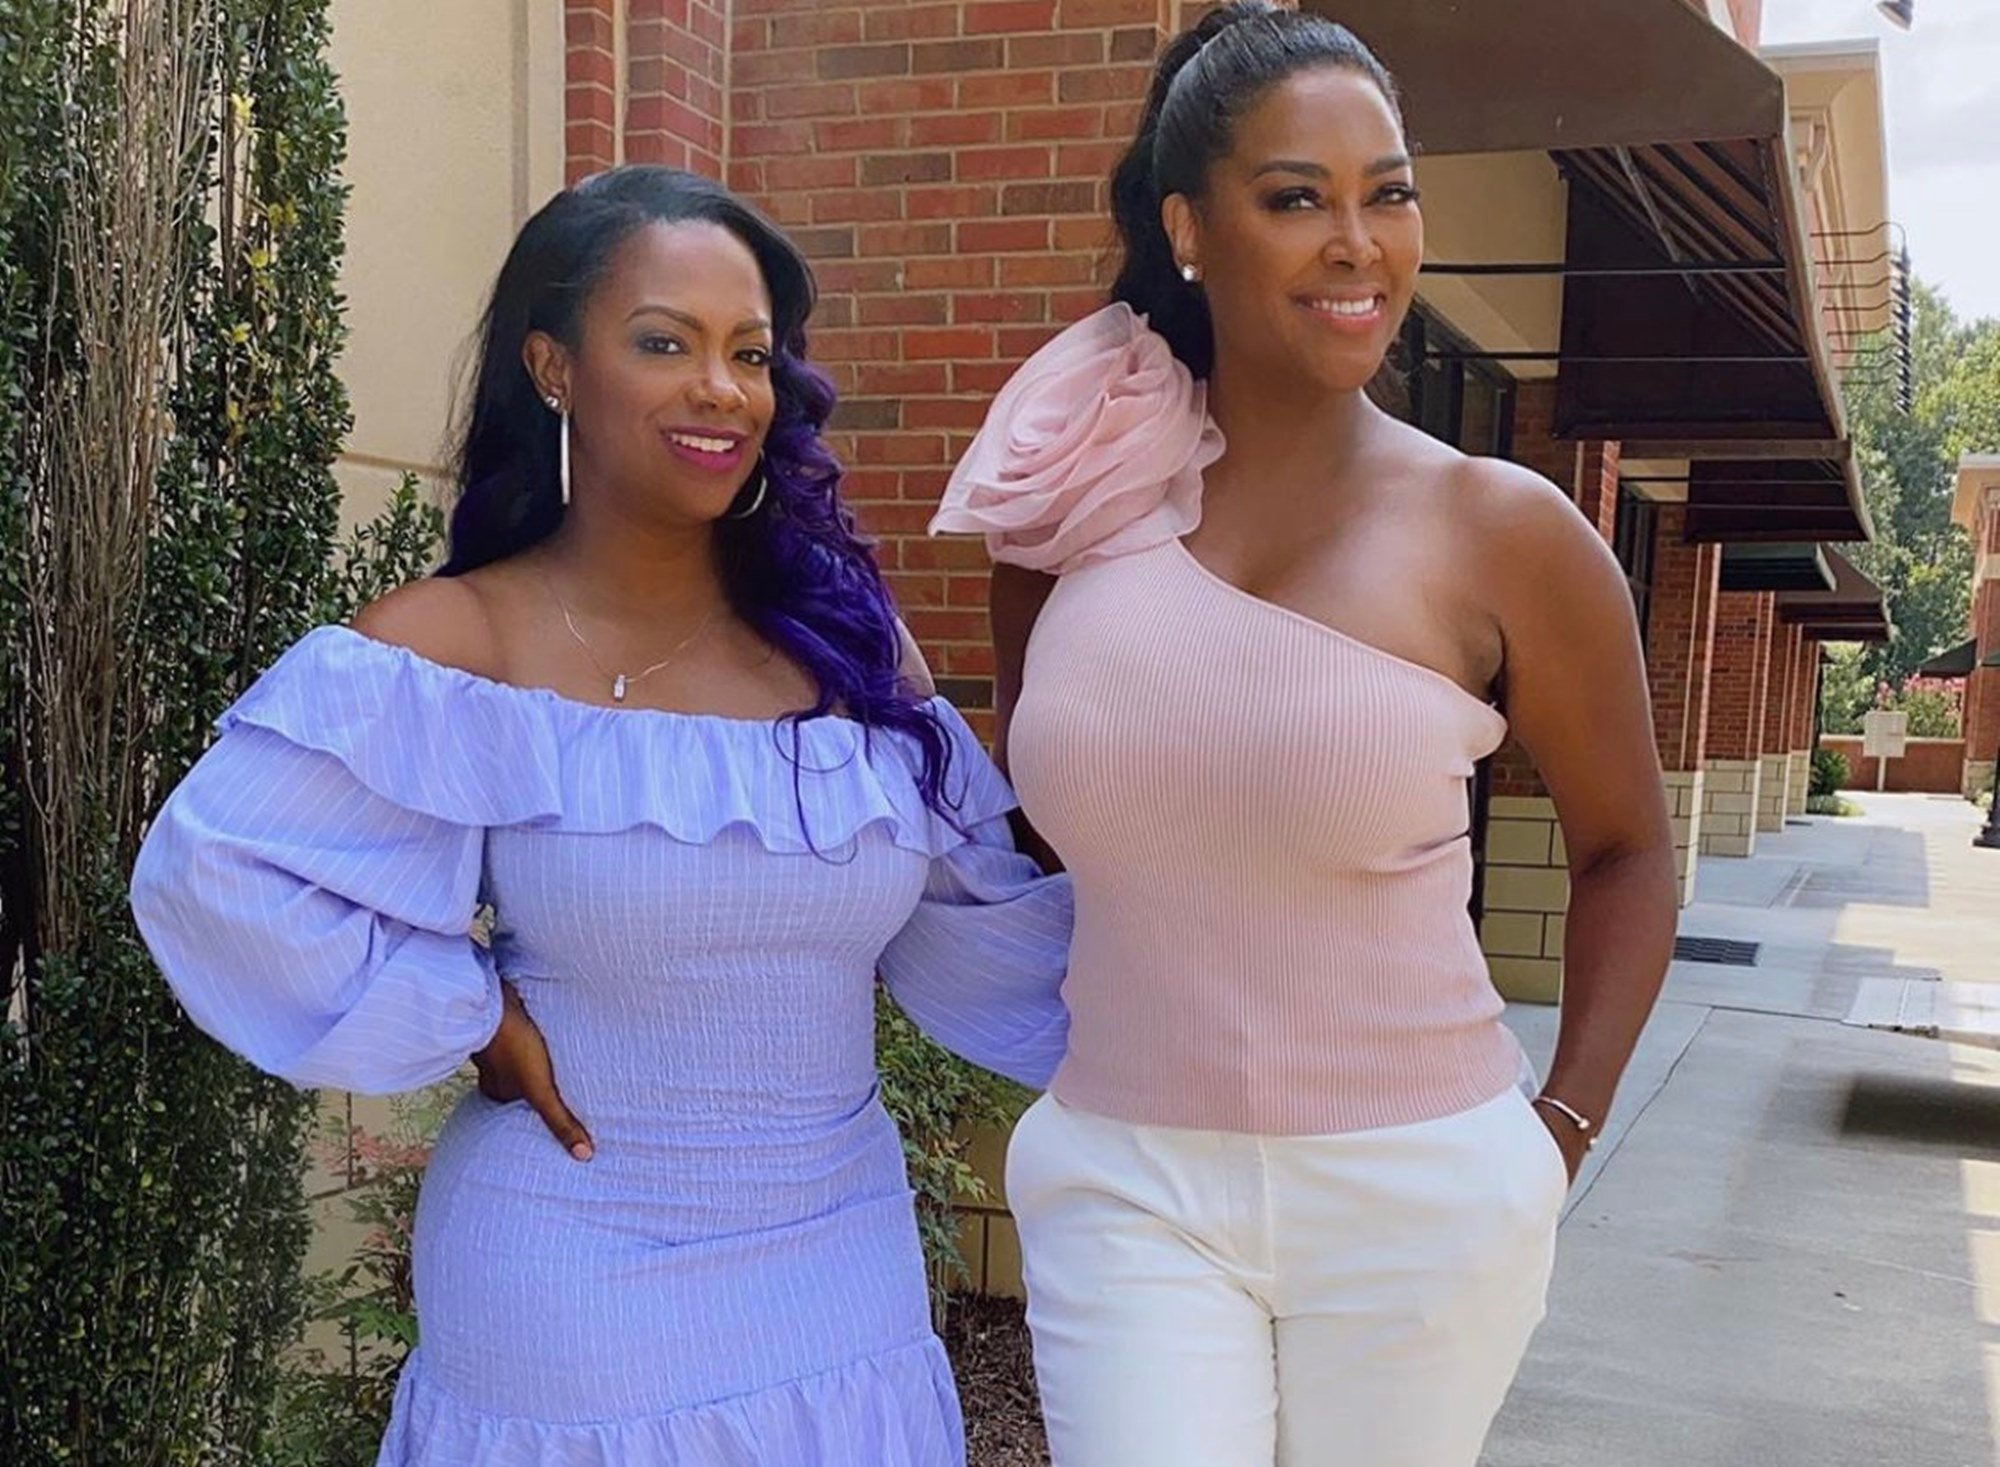 Kandi Burruss And Kenya Moore Have Fierce Bathing Suit Competition In These Photos —  'Real Housewives Of Atlanta' Fans Have A Hard Time Picking The Winner